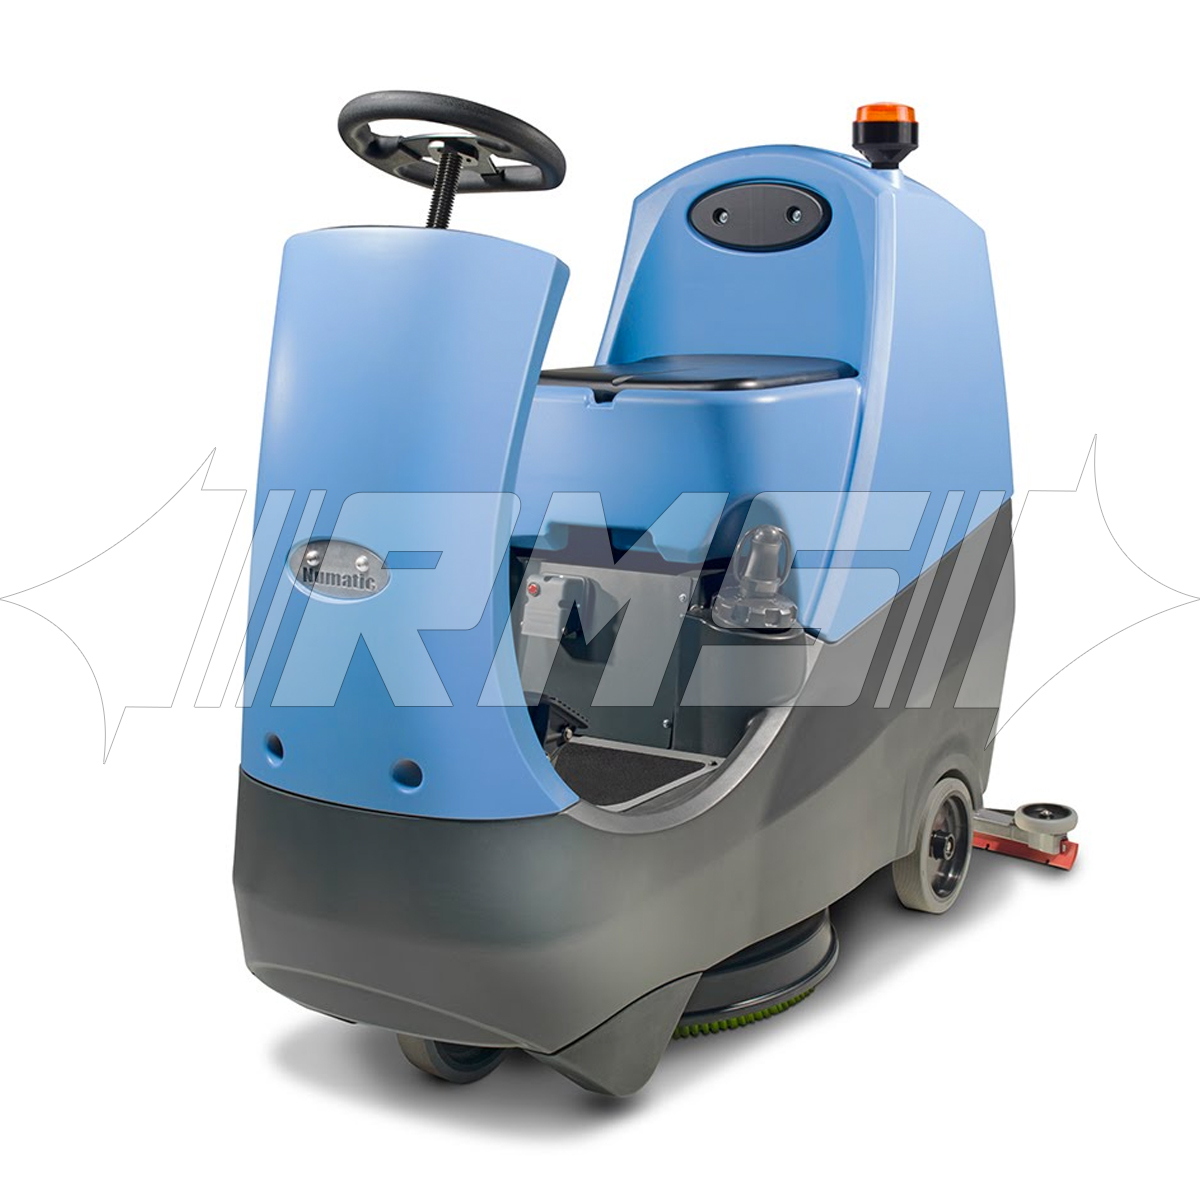 TTB 2120 Twintec compact position assise